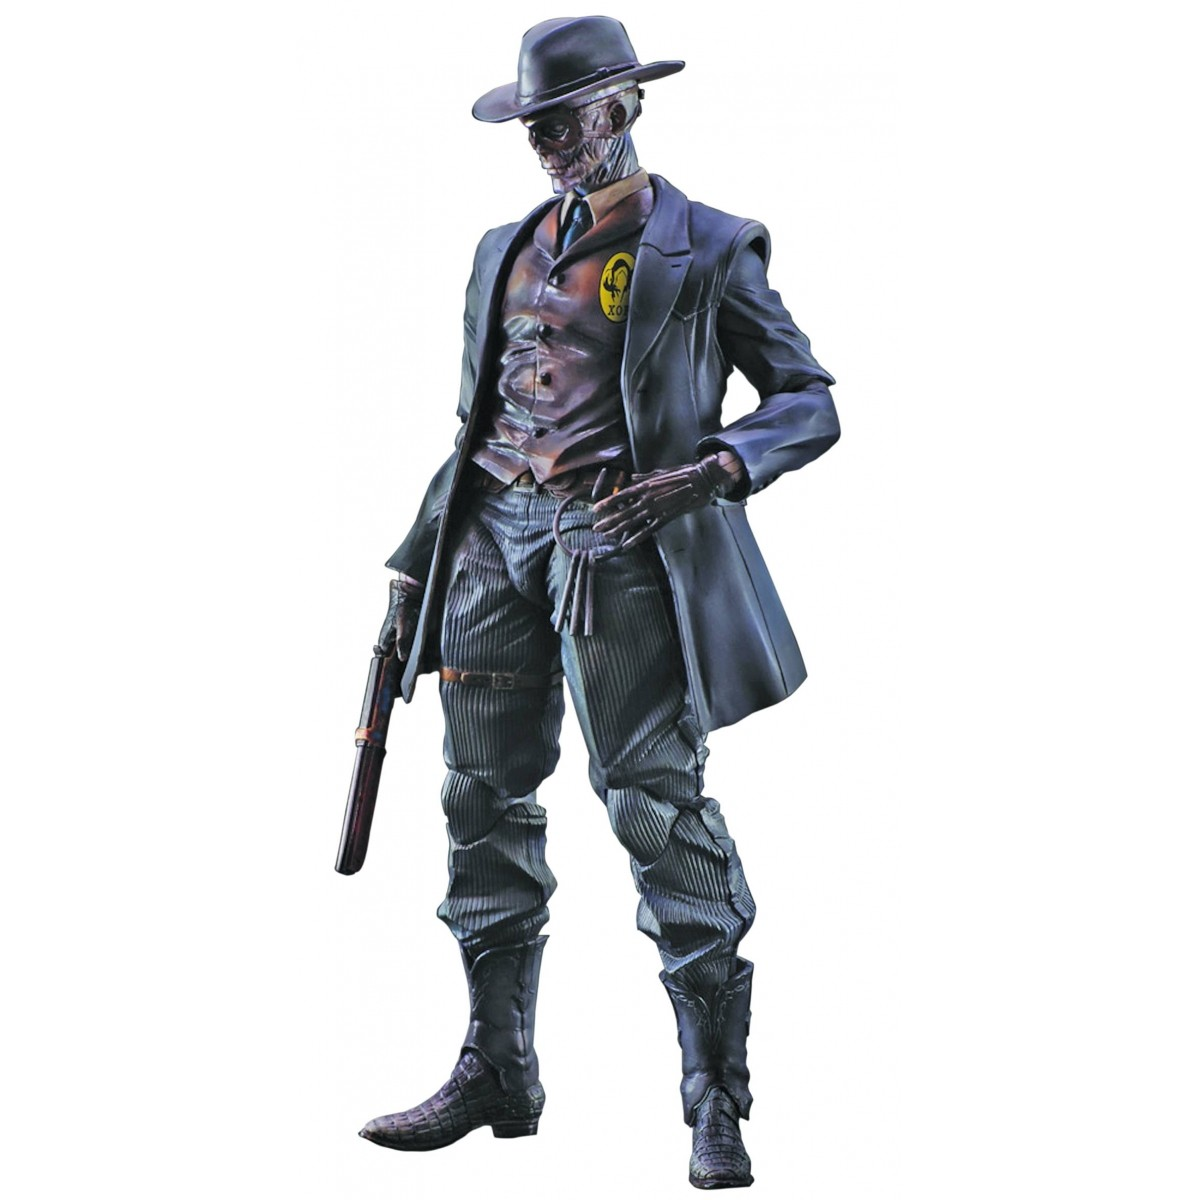 Boneco Skull Face: Metal Gear Solid V: The Phantom Pain Escala 1/7 - Play Arts Kai (Square Enix)